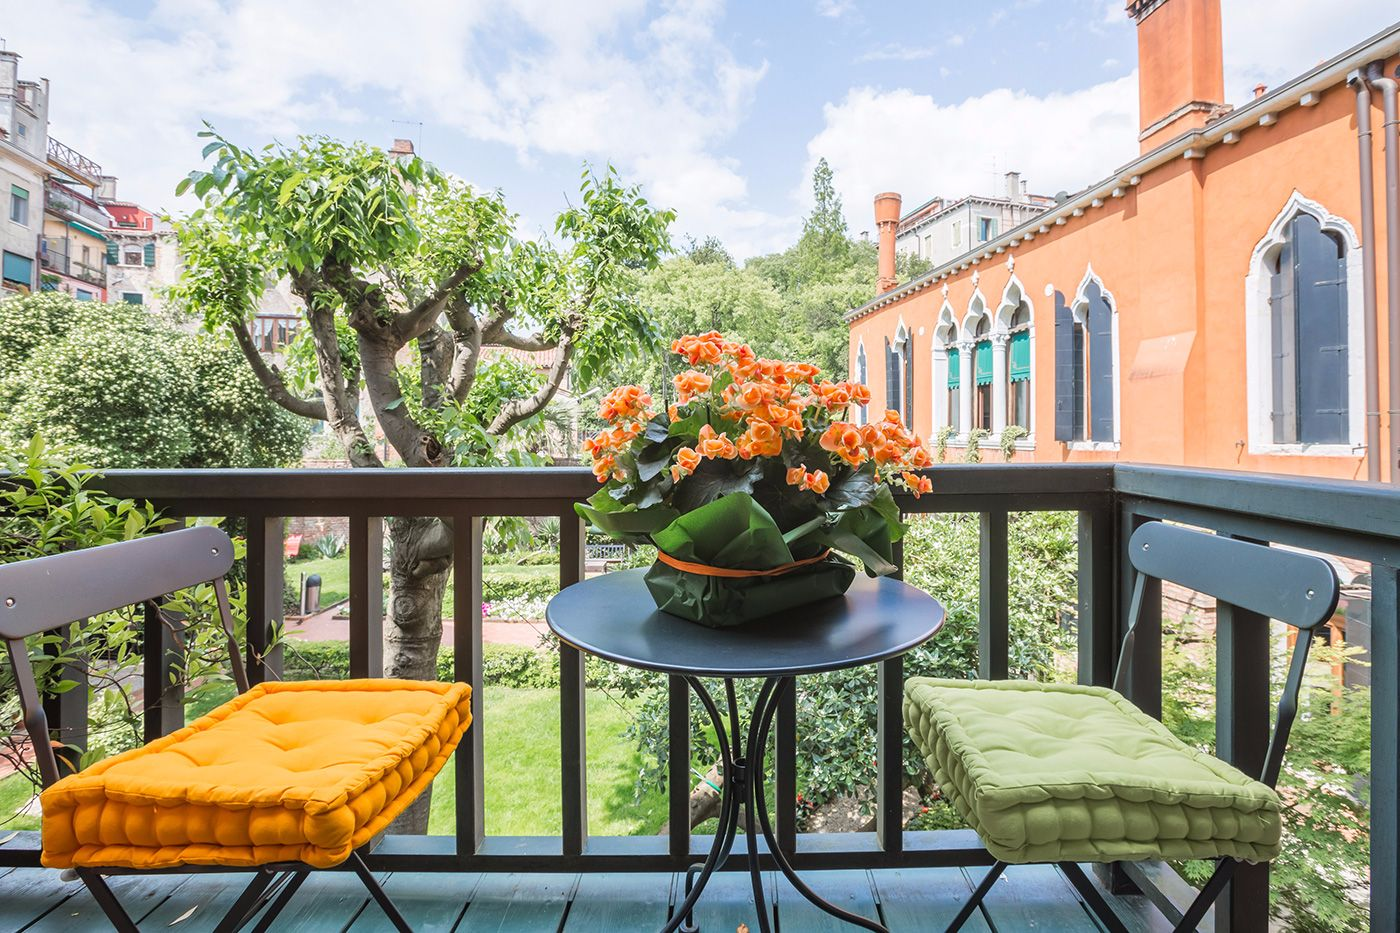 relax on the little terrace facing the gardens at the Veronese apartment in Venice